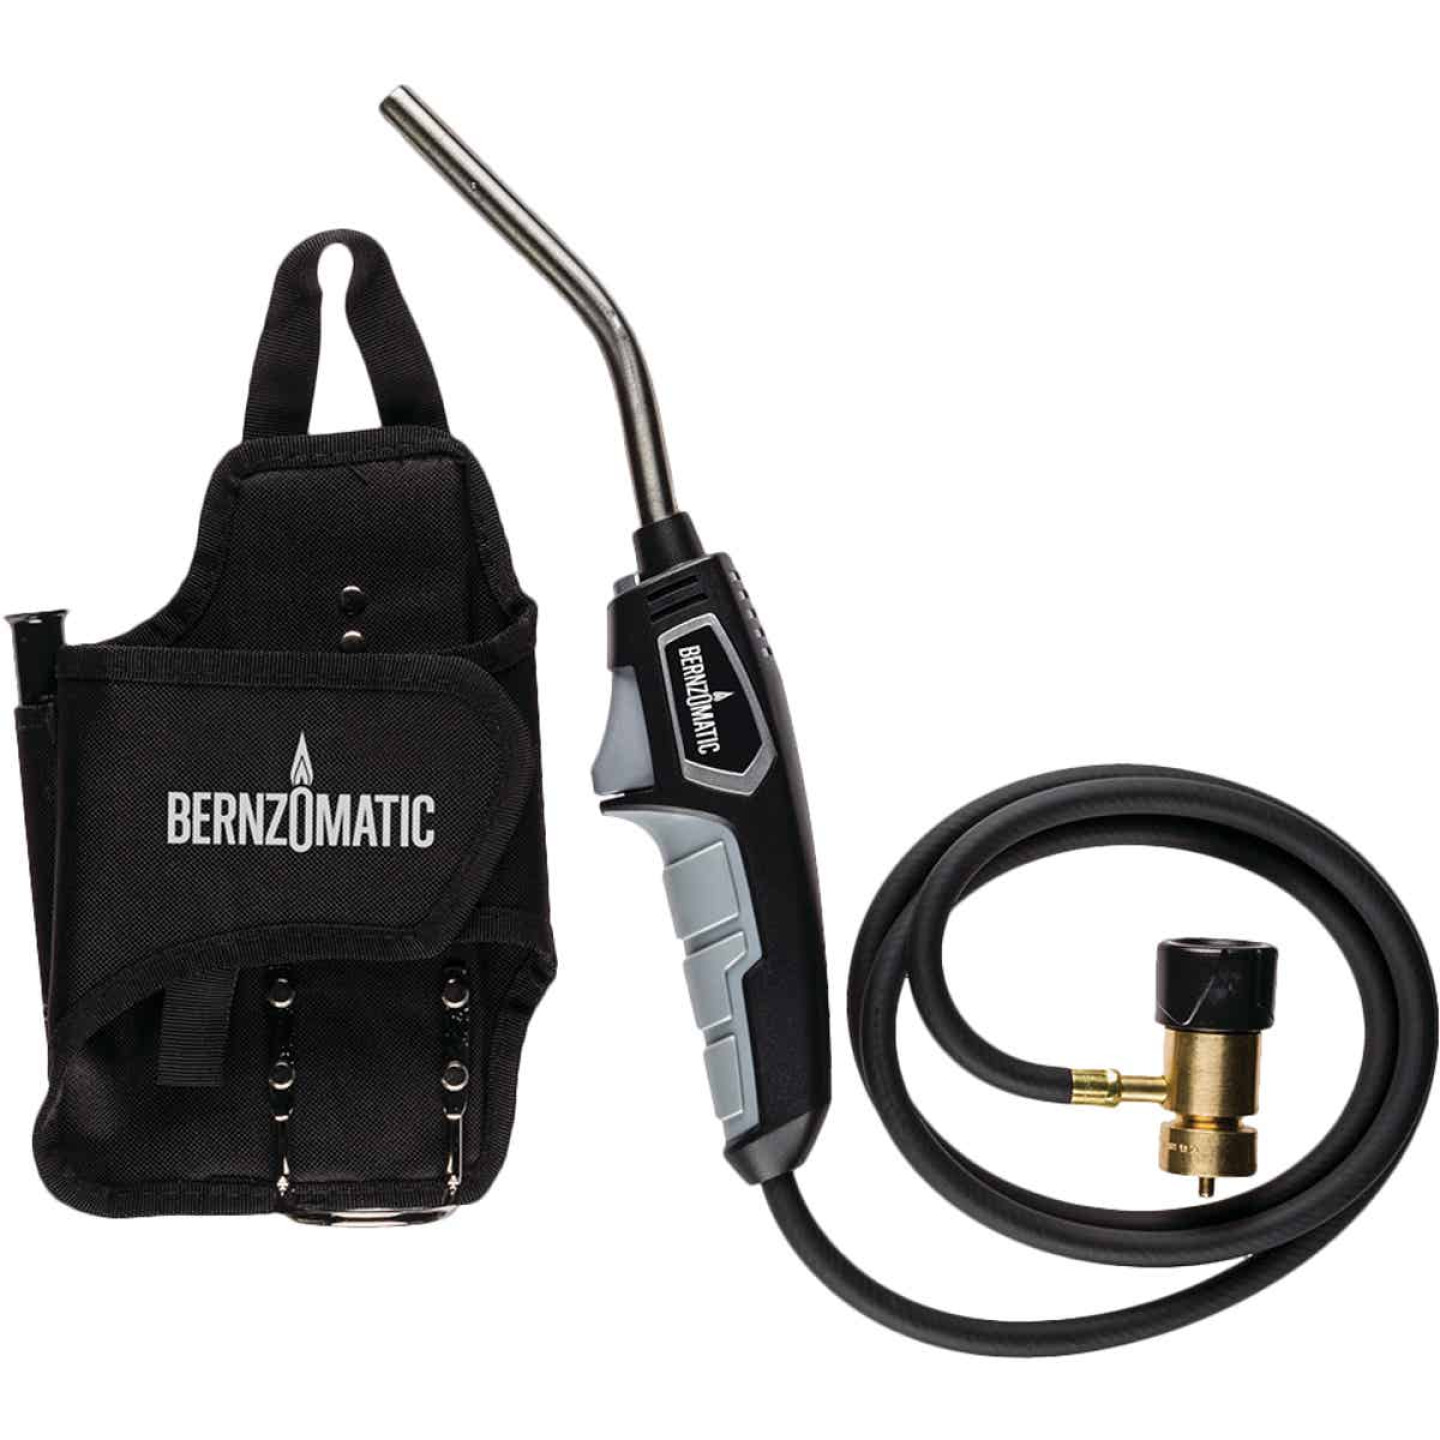 Bernzomatic Trigger Start Hose Torch Head for Accessibility and Mobility Image 1